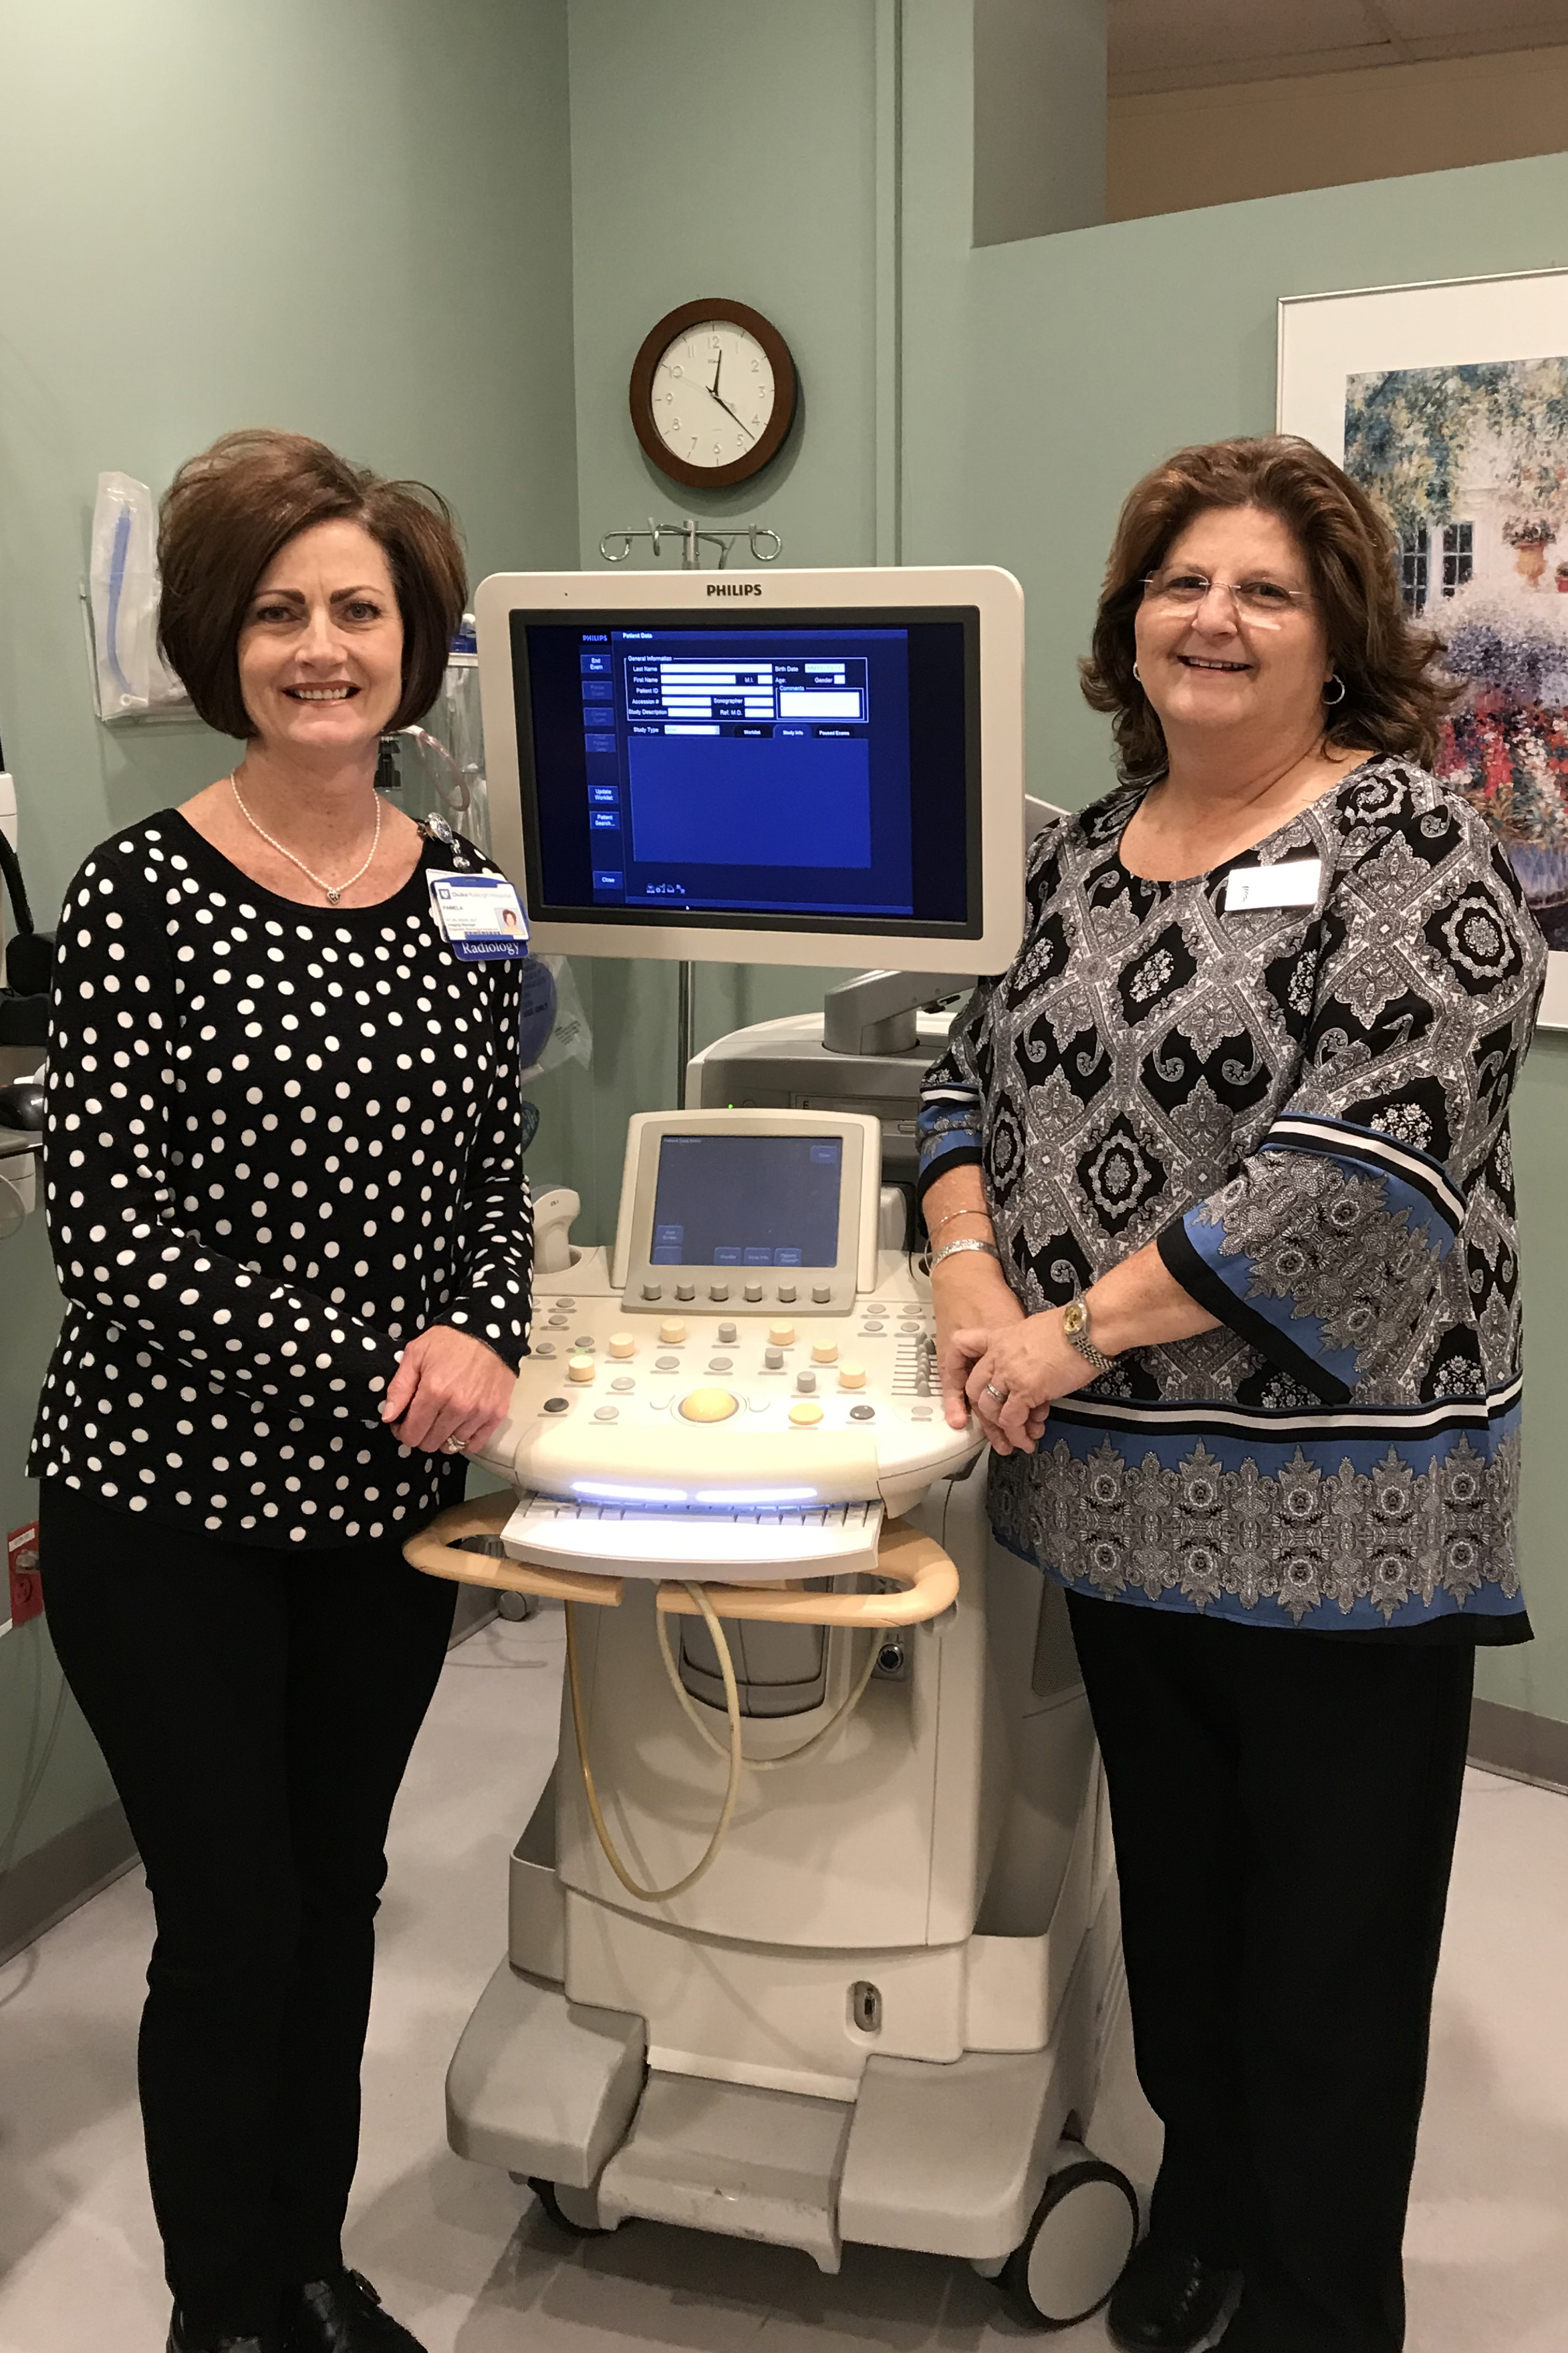 Pamela Yahraes, department manager at Duke Raleigh Hospital Ultrasound Center, is pictured with Cathy Godwin, program director of sonography programs at JCC.